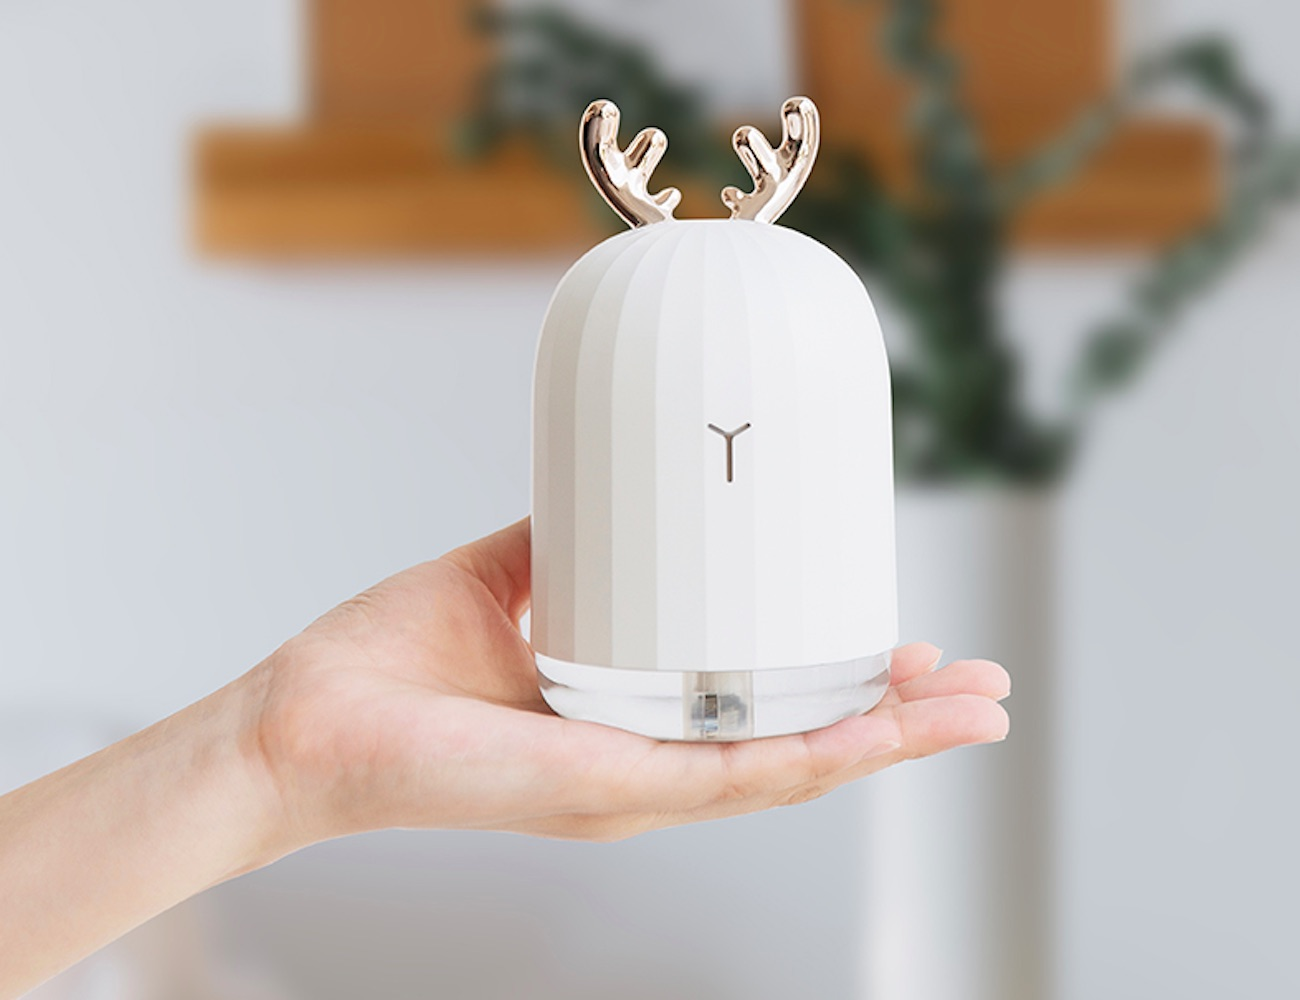 Antler Ultrasonic USB Air Humidifier & Diffuser offers a fun take on better air quality